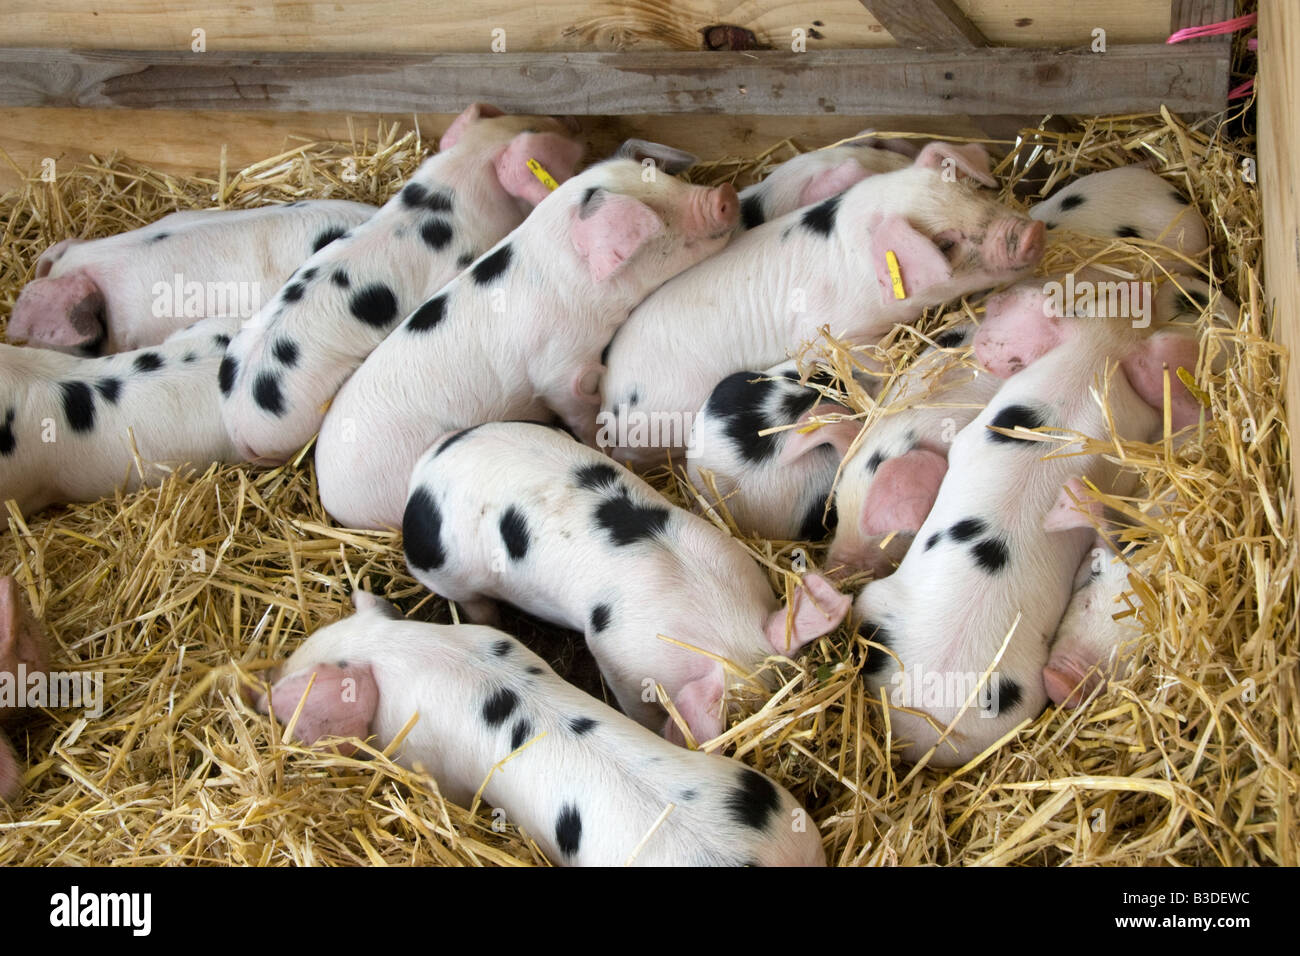 Gloucester Old Spot Piglets at Cranleigh Show, 2008 - Stock Image